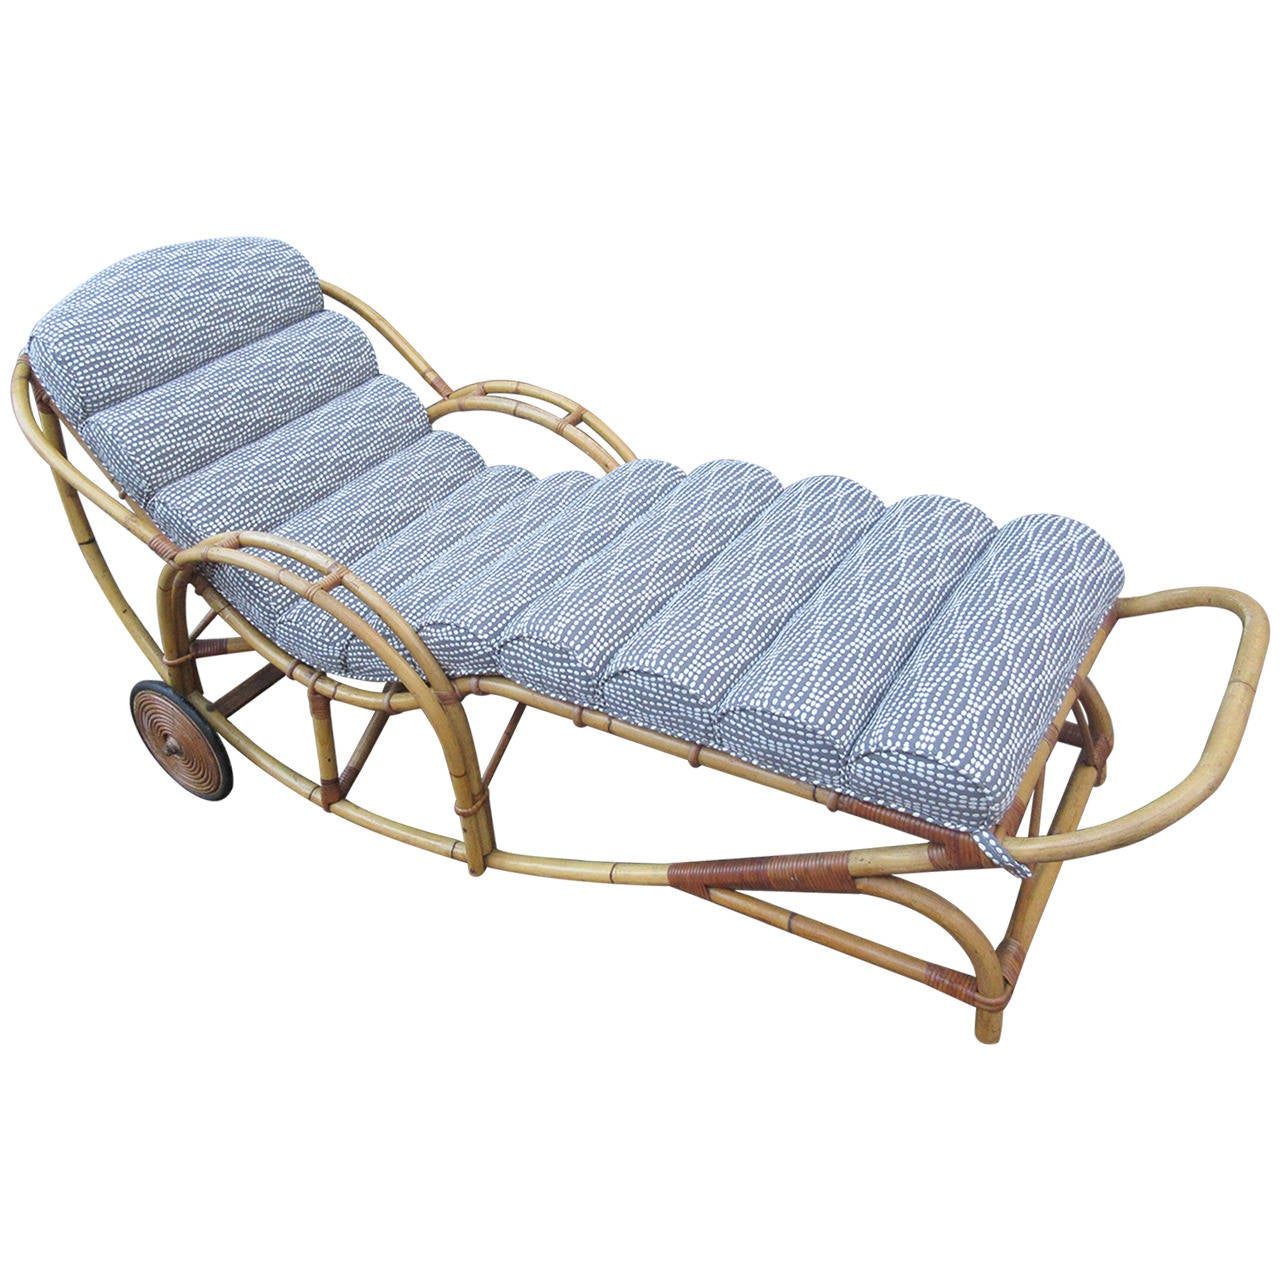 1930s rattan chaise longue at 1stdibs for Chaise longue furniture